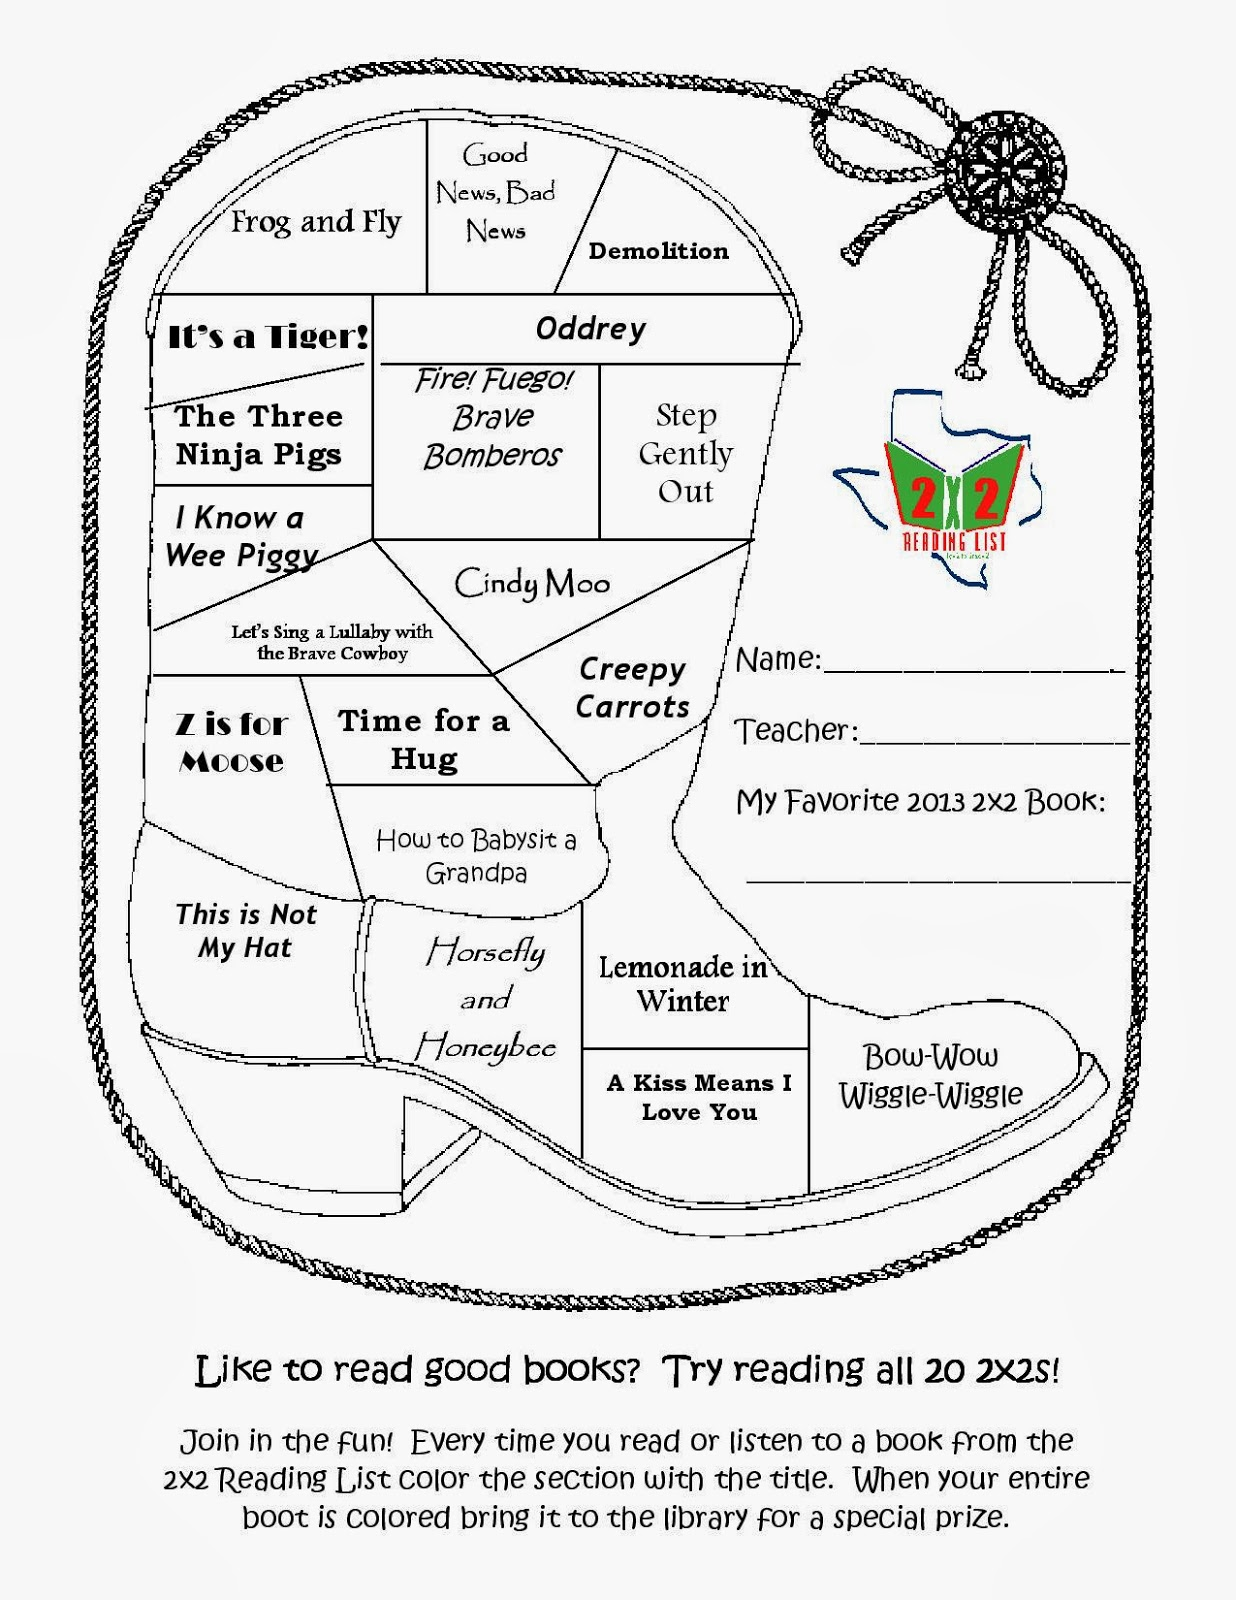 Mrs. Mattei's Book Bits Blog: Want to Become a 2x2 or